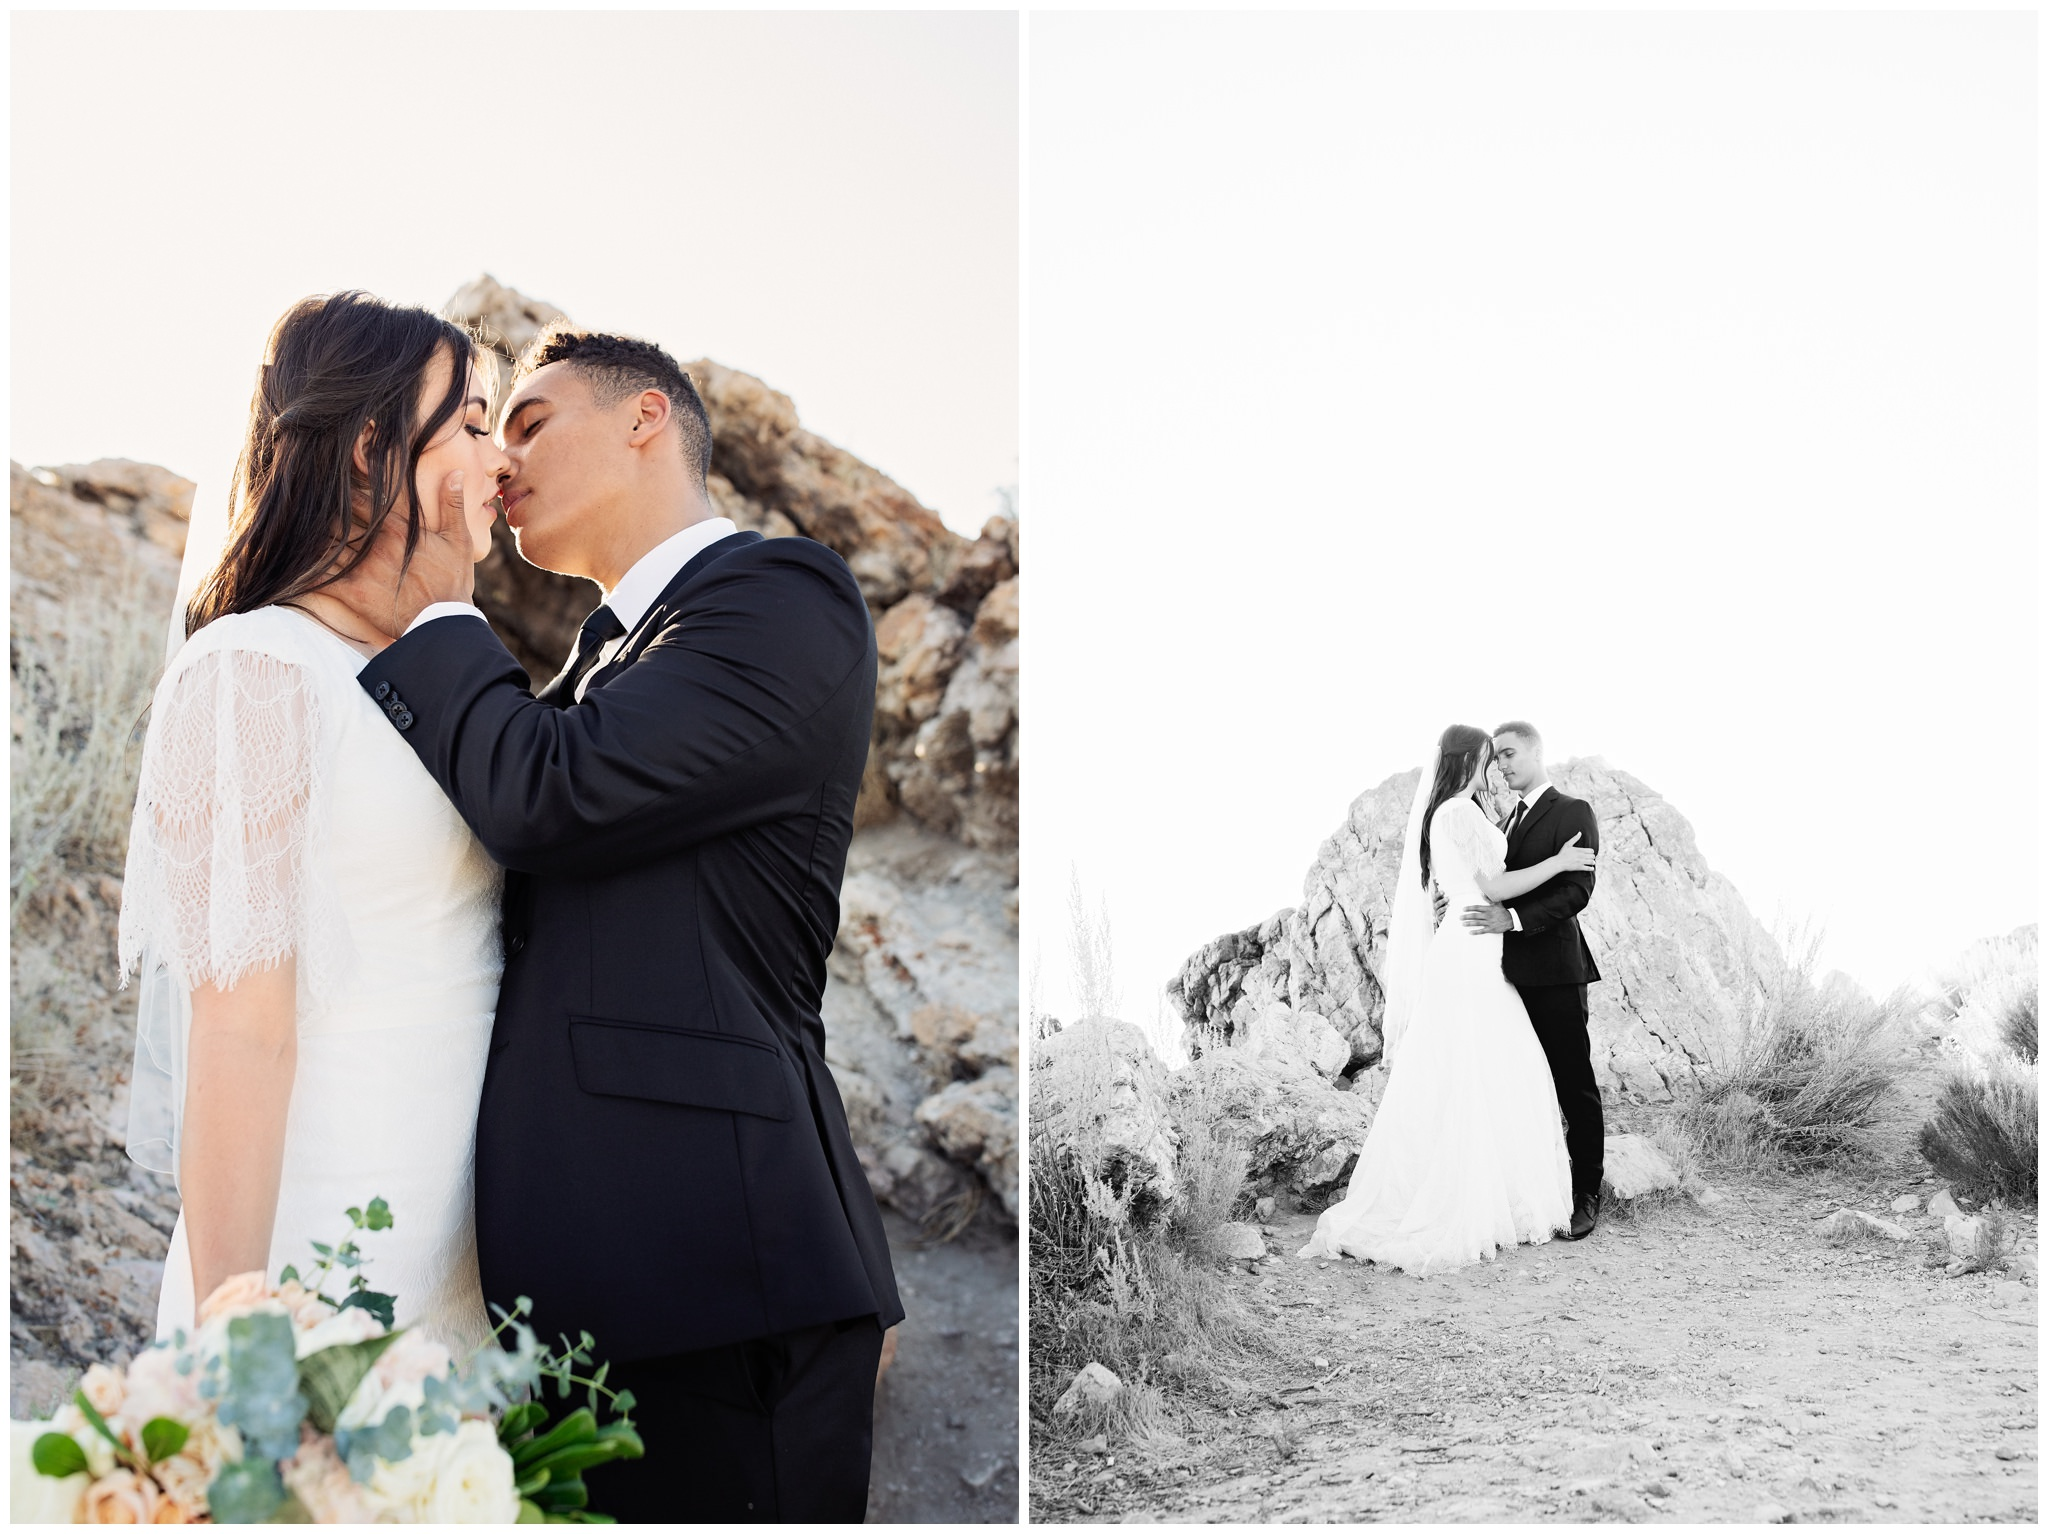 Bride and groom pictures at Ladyfinger Point at Antelope Island, Utah.